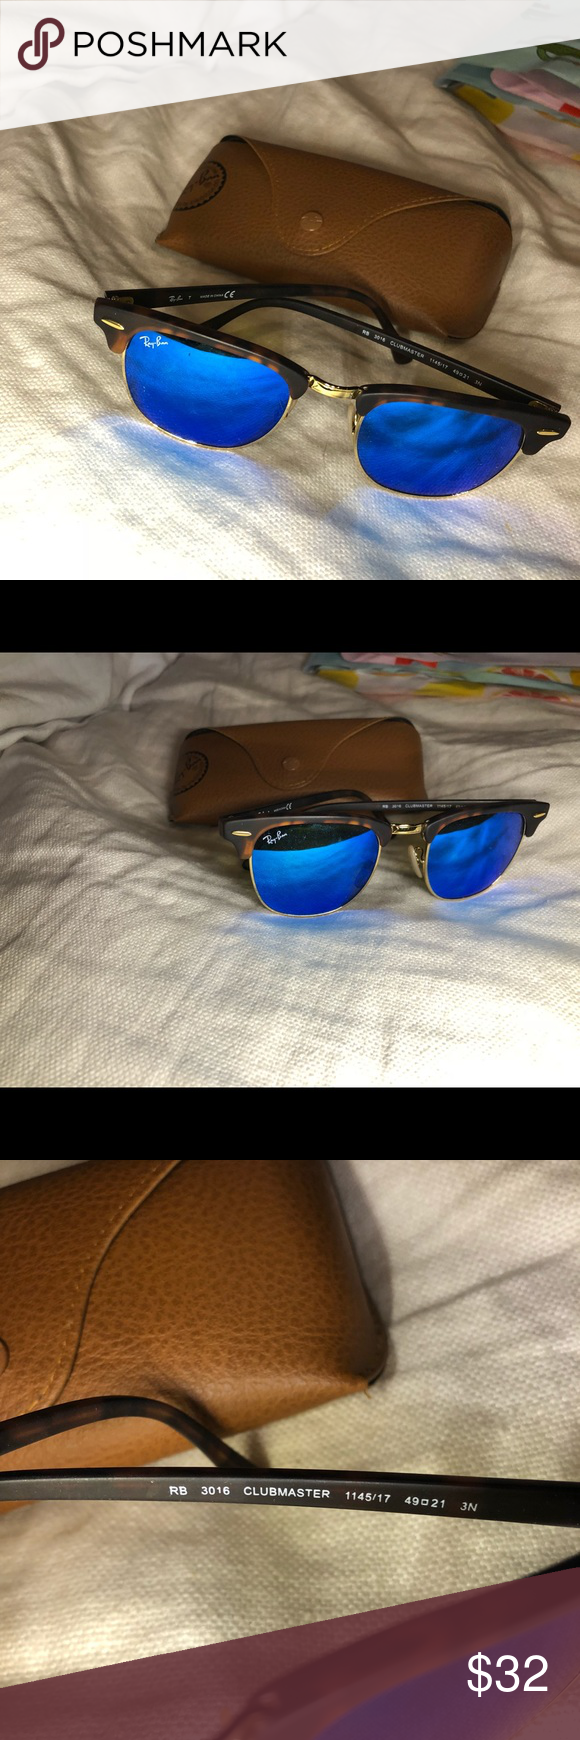 68355cd6c8 Ray-Ban Clubmaster Tortoise Matte Blue Mirror Sunglasses Ray-Ban Clubmaster  Tortoise Matte Flash Lenses RB3016 1145 17 49-21 Small Mirror great  condition ...